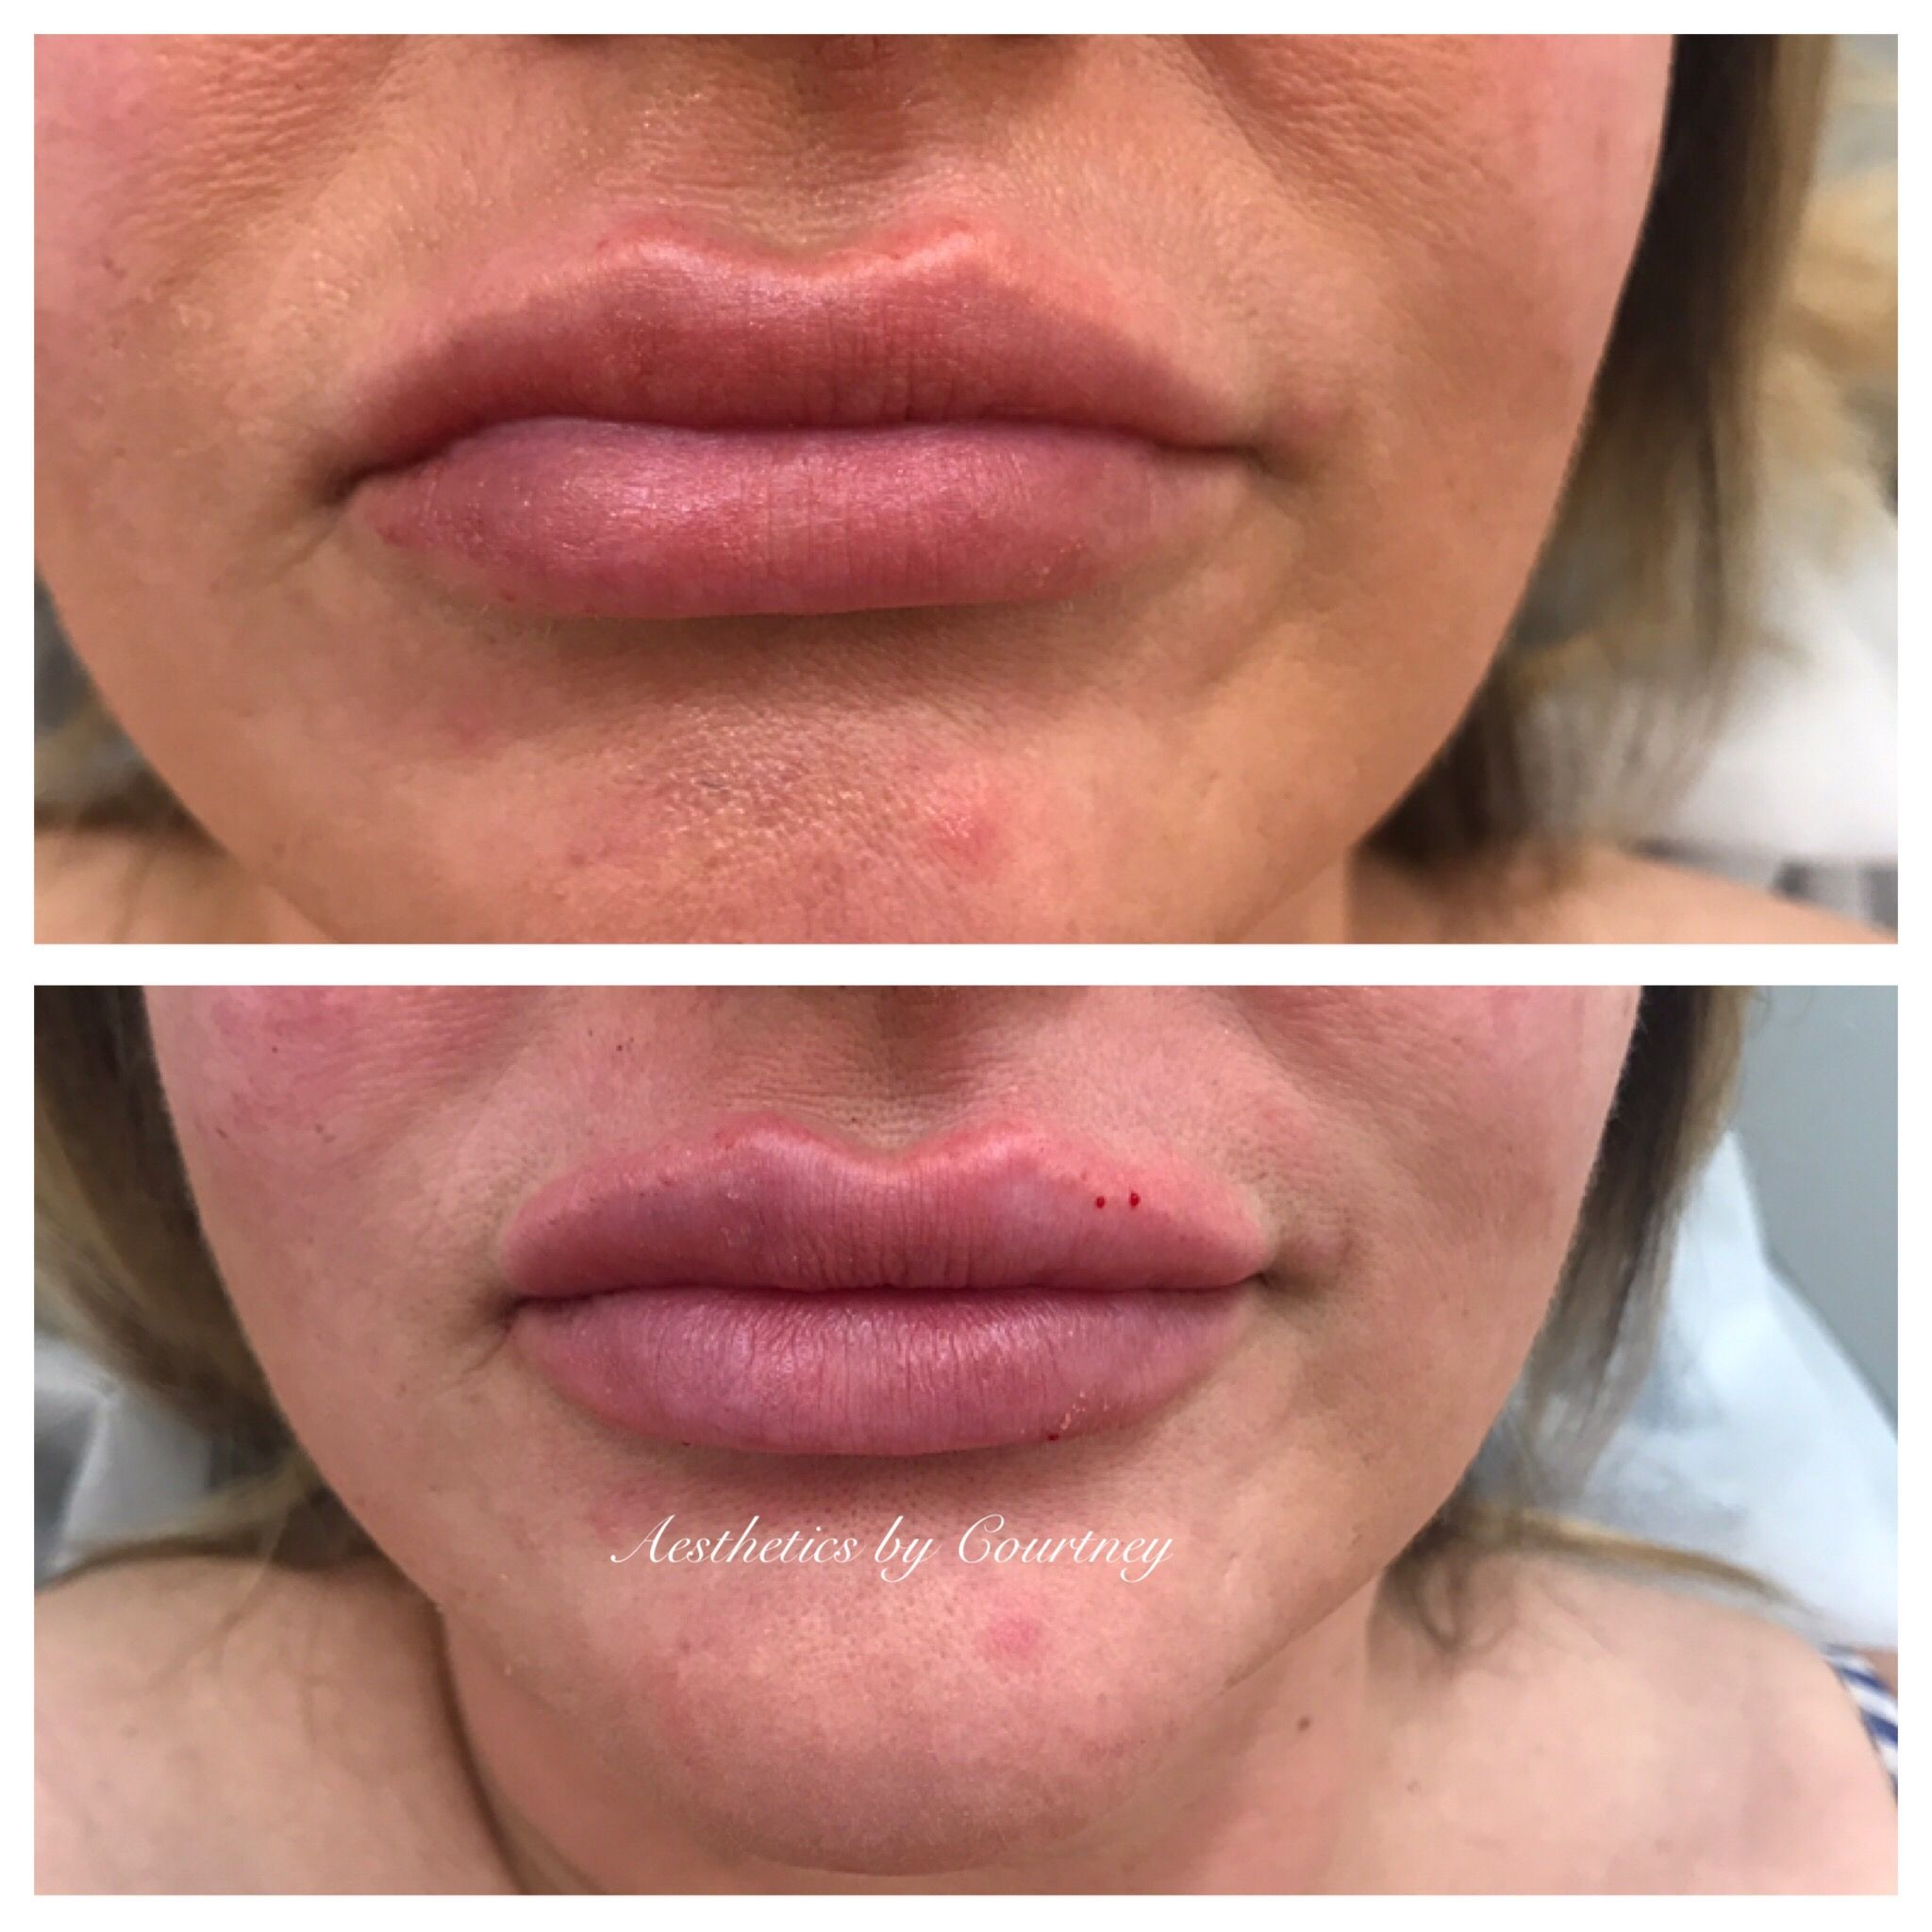 Lips Lipsbycourt Courtcreates Dermalfiller Dermalfillerlips Aesthetics Beautification Enhance Pout Kiss Results Lipaugmentation Cosmeticinjectable